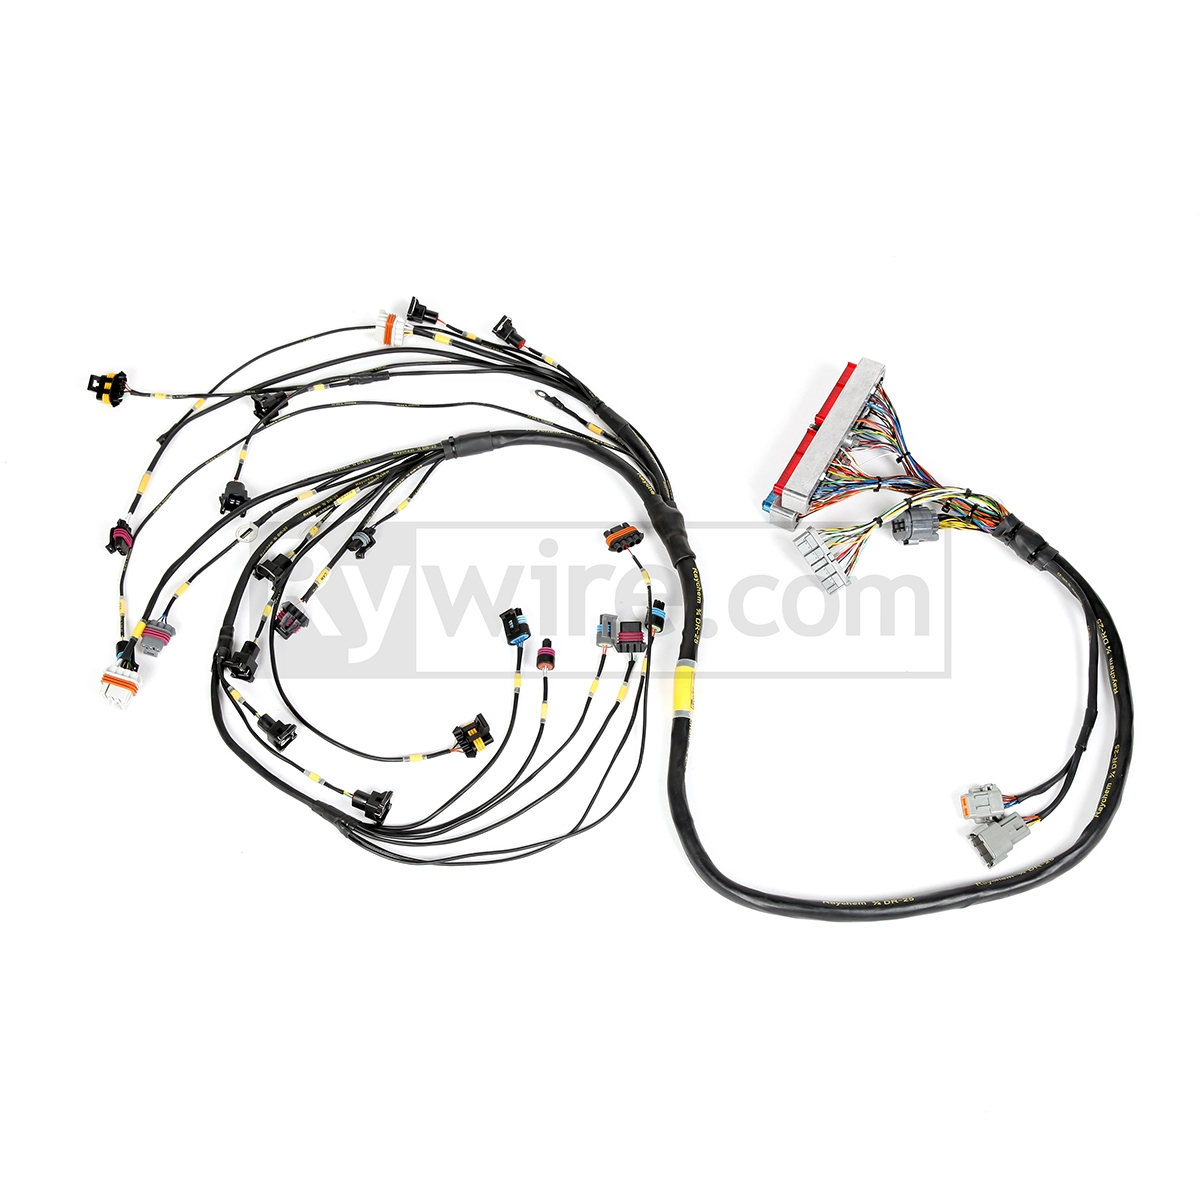 Ls1 Mil Spec Tuck Engine Harness Ls Coil Wiring Alternative Views